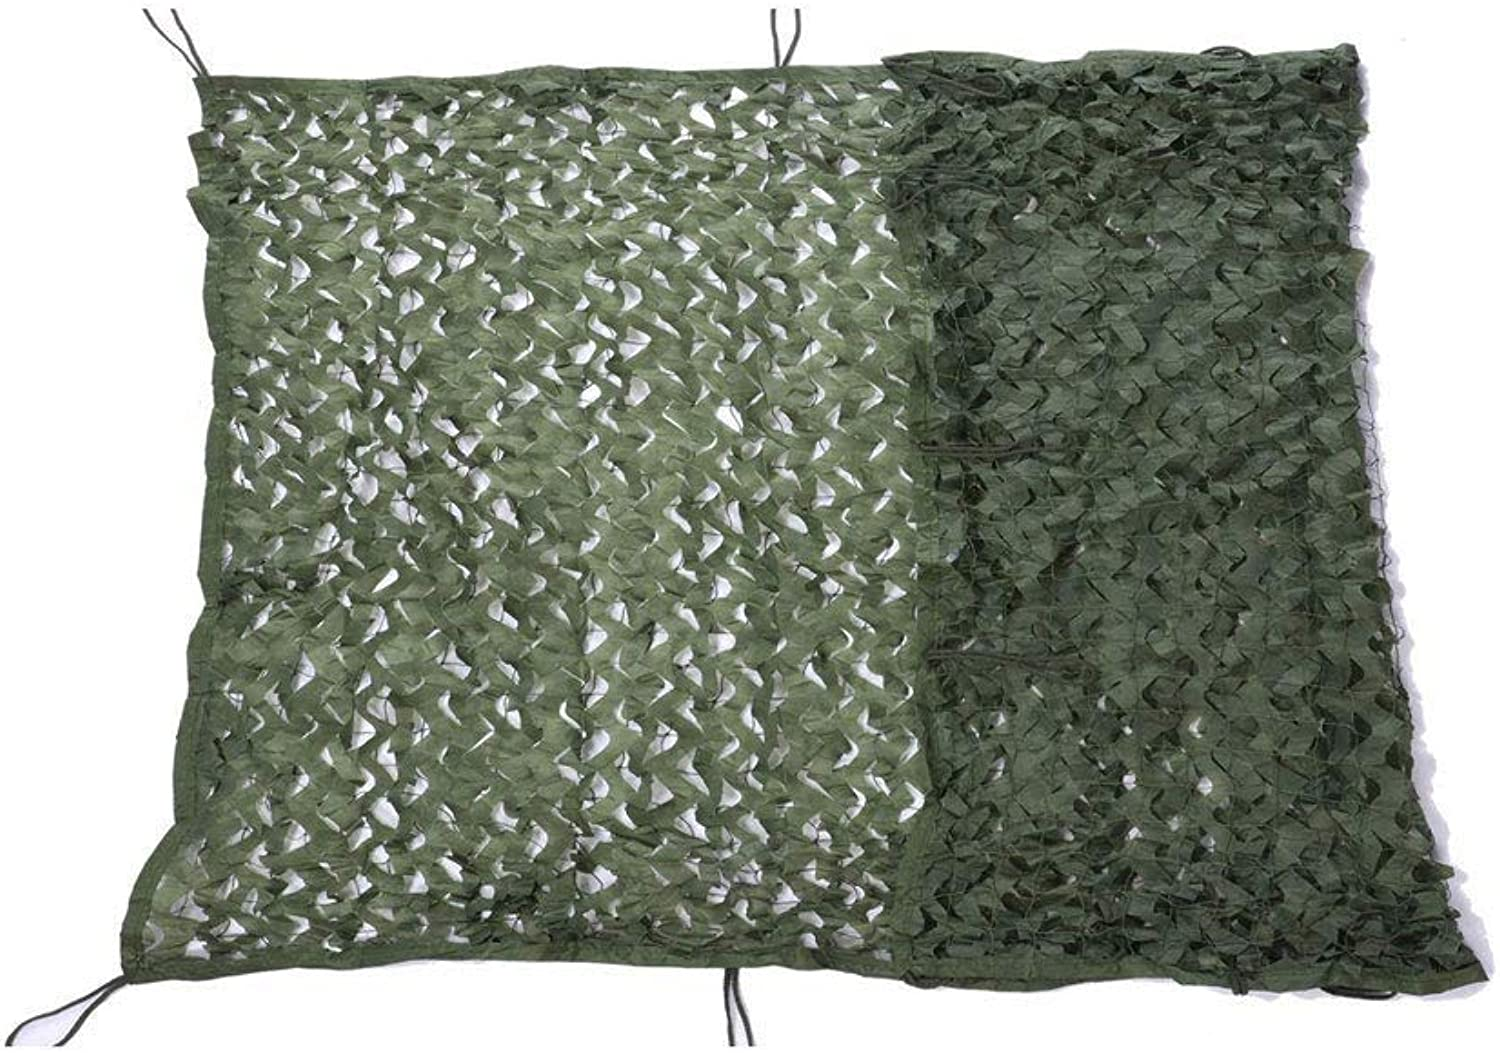 Camouflage Net Camo Netting Oxford Fabric Hunting Shooting Hide Army for Camping Hide,3x4m